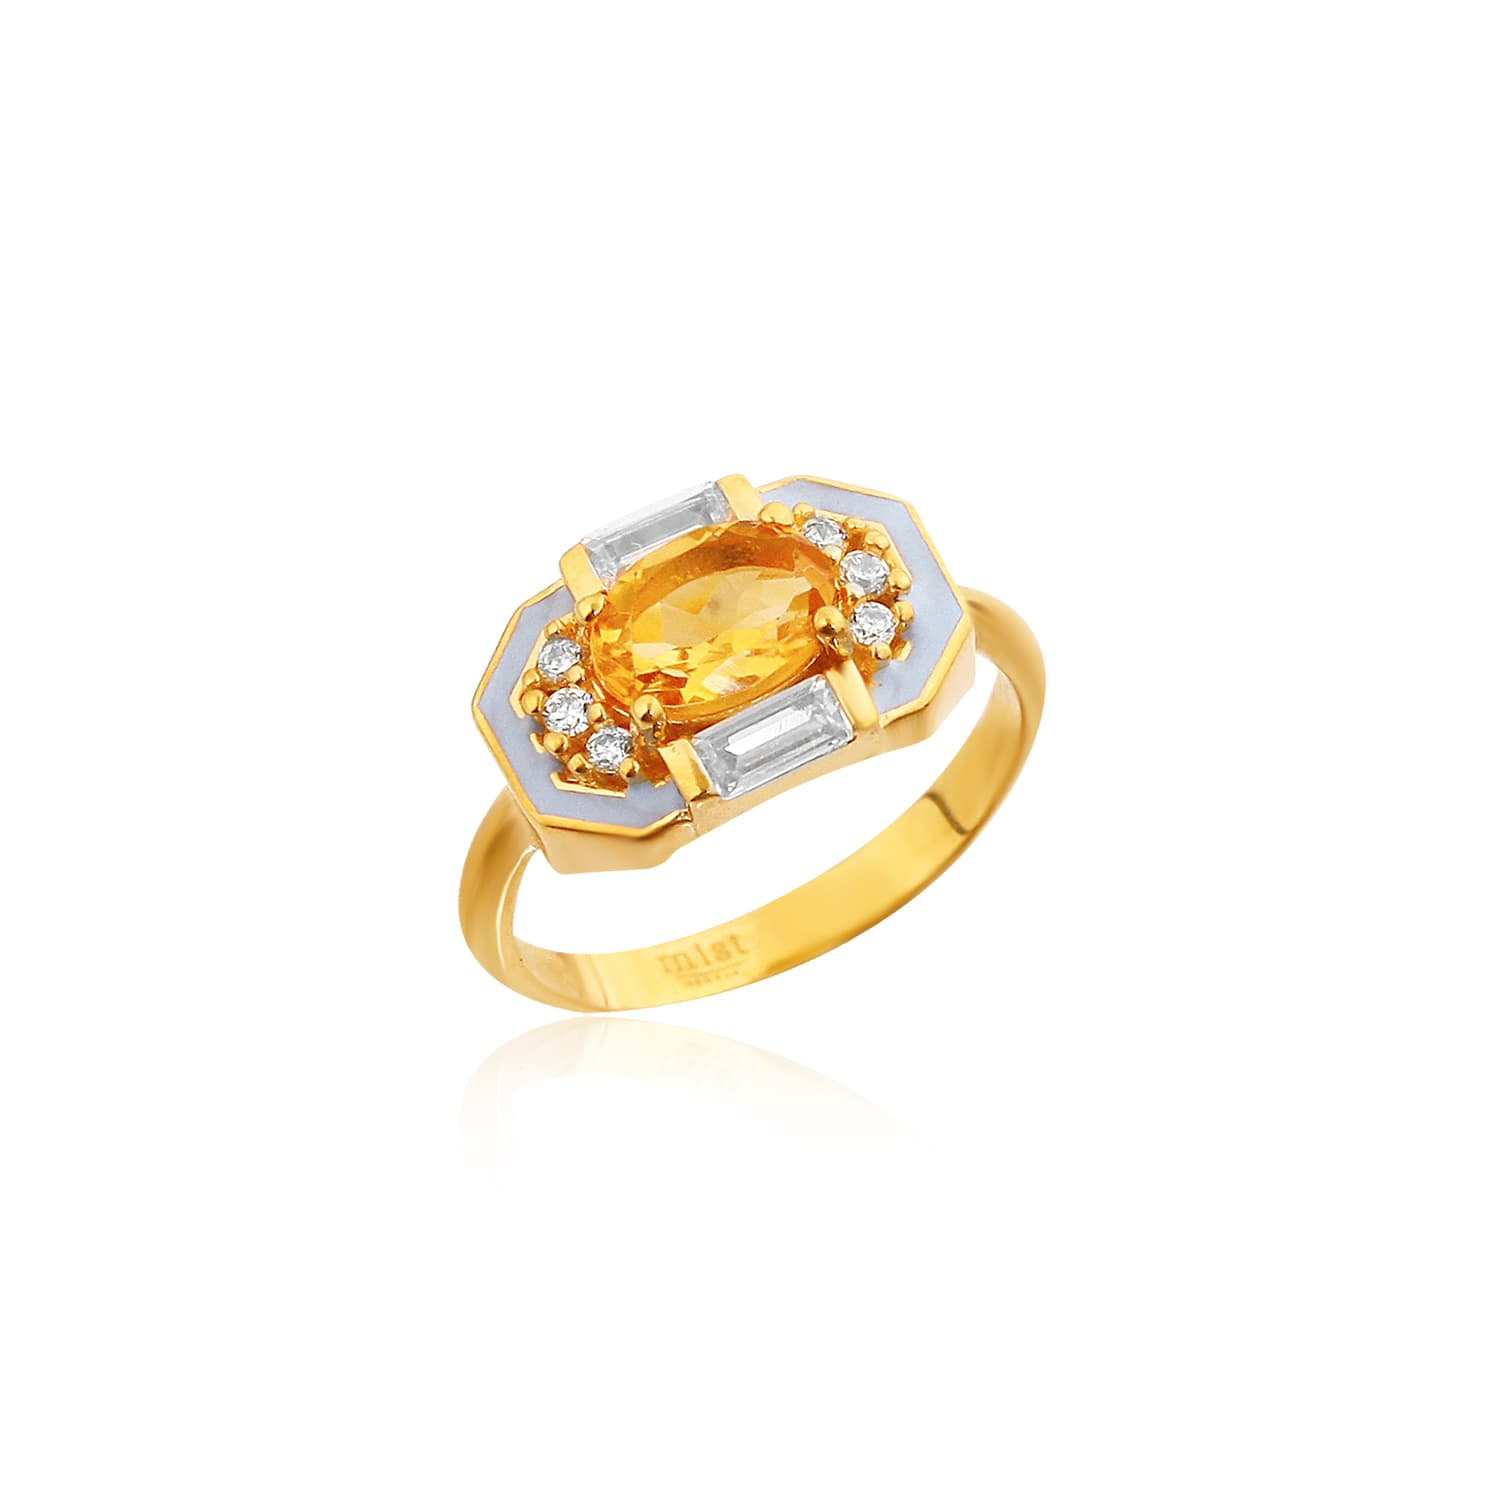 Real gold plated enamel and citrine stone ring on silver